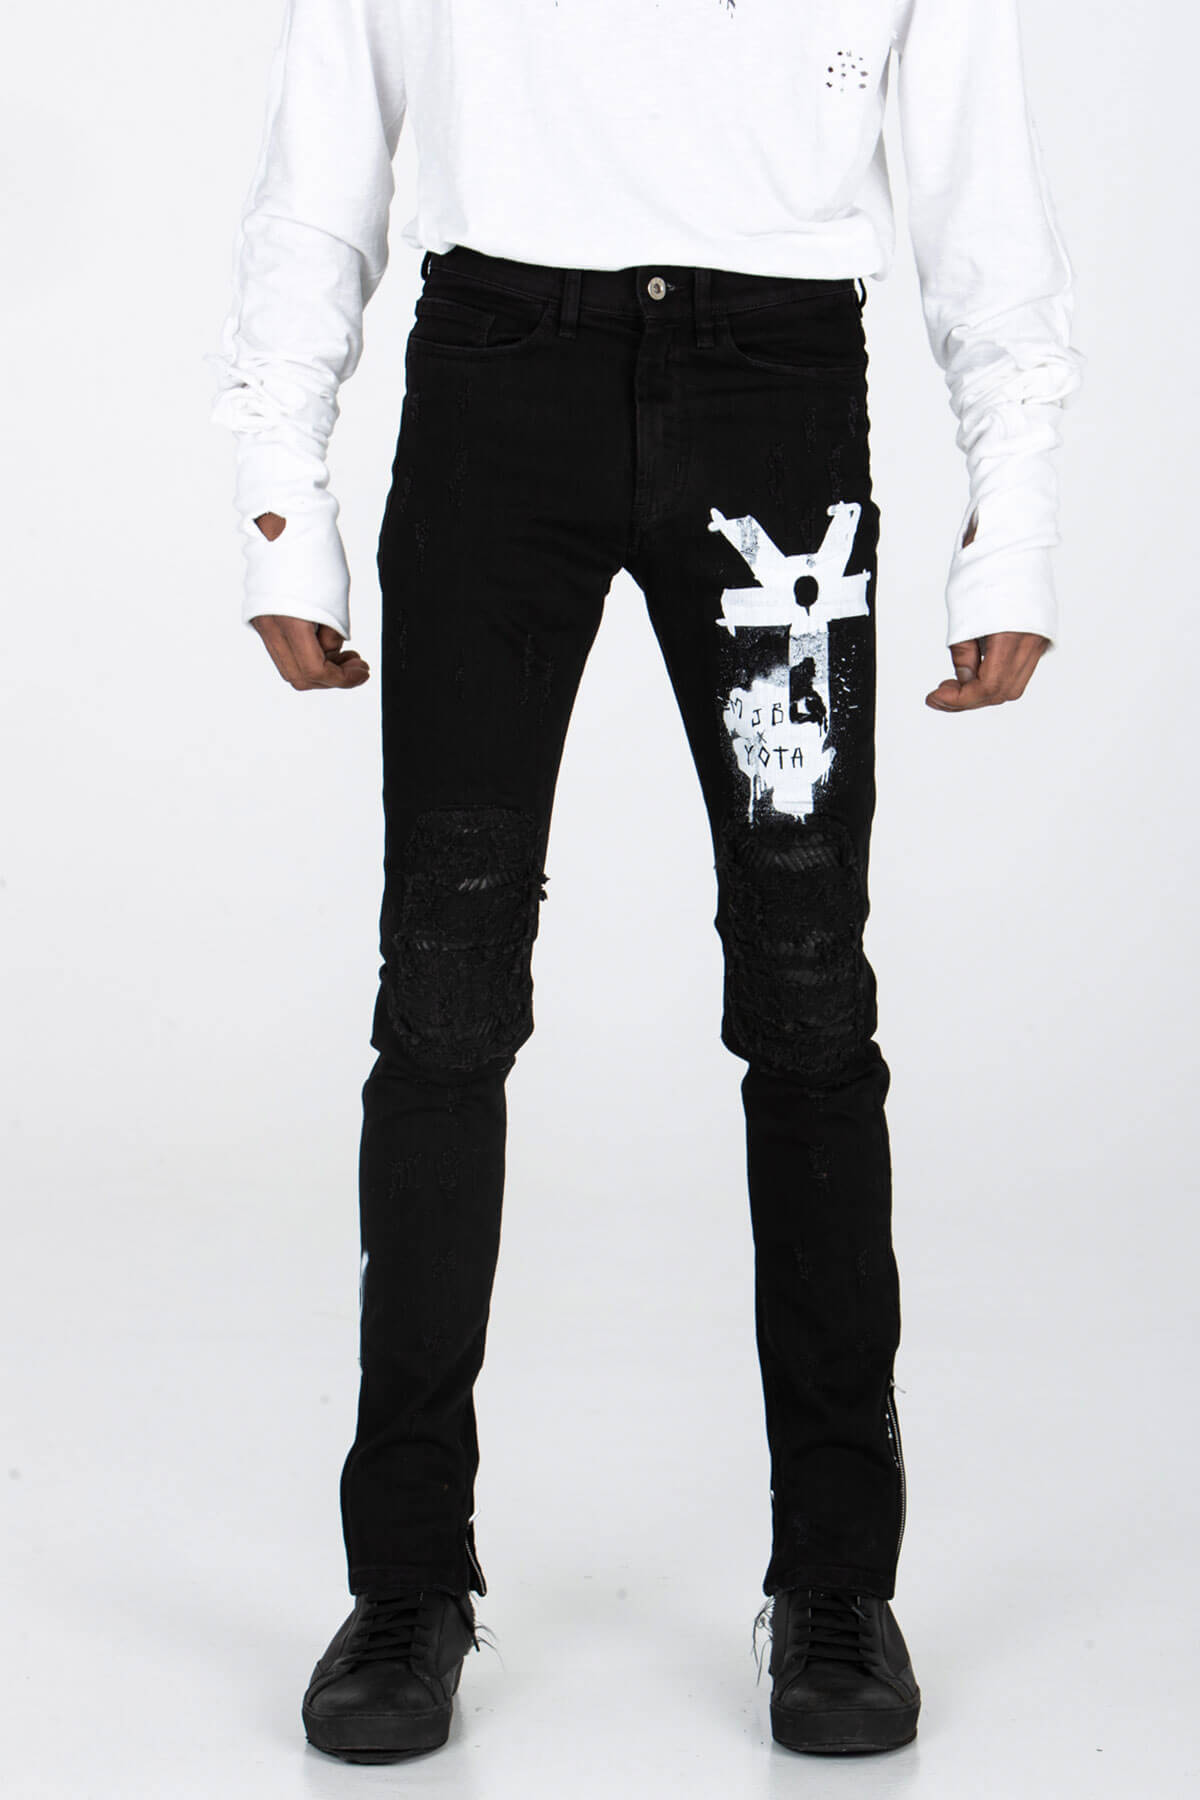 CRIXUS JEANS – YOTA (LIMITED EDITION) - MJB